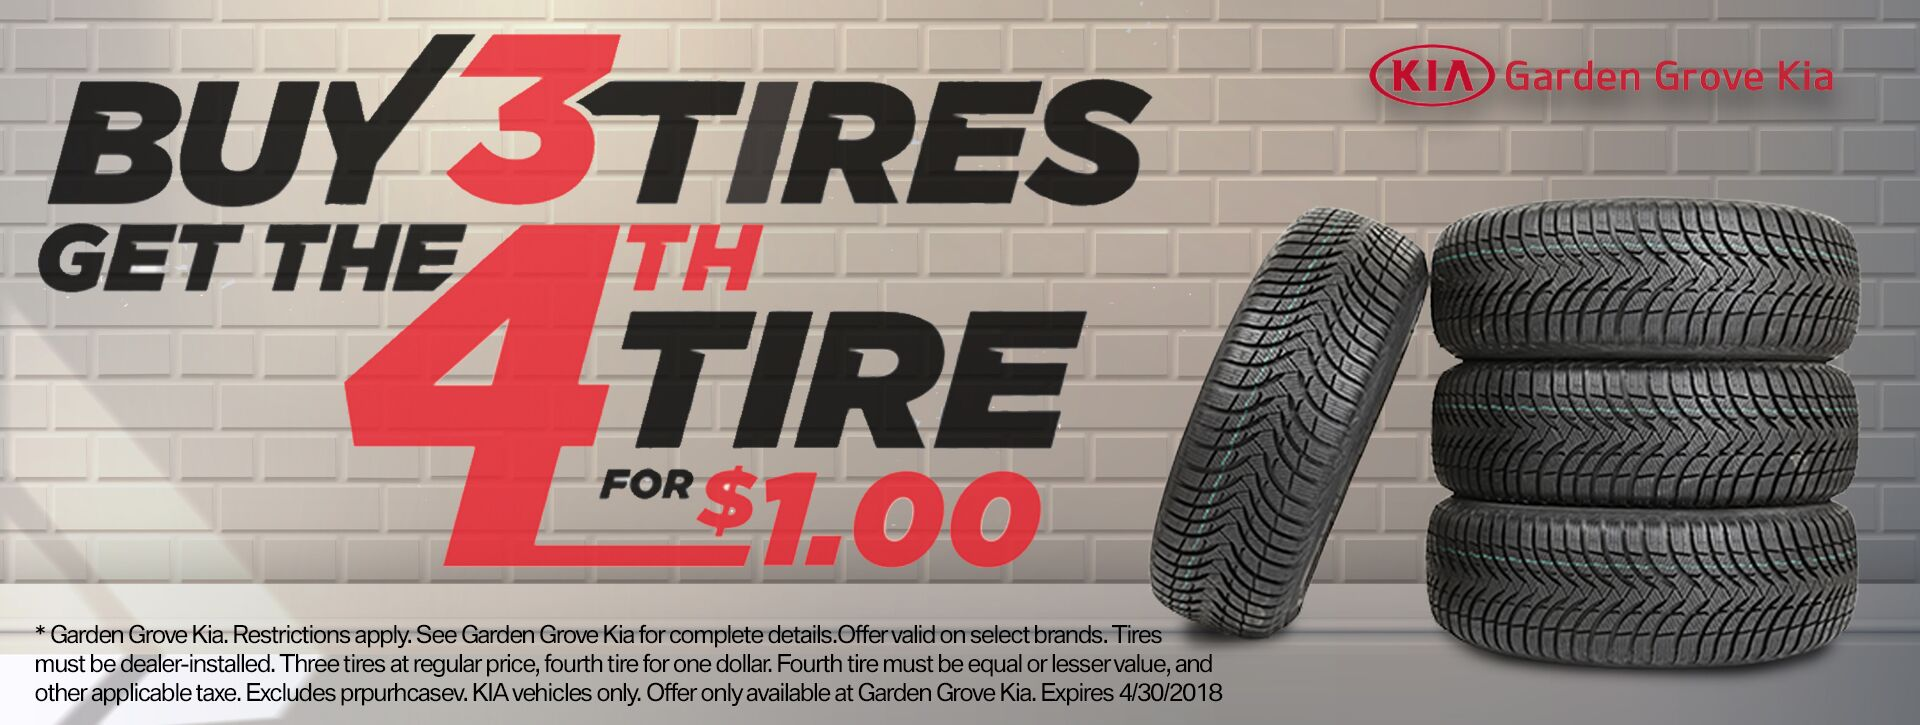 GG Tires buy 3 get 4th for $1